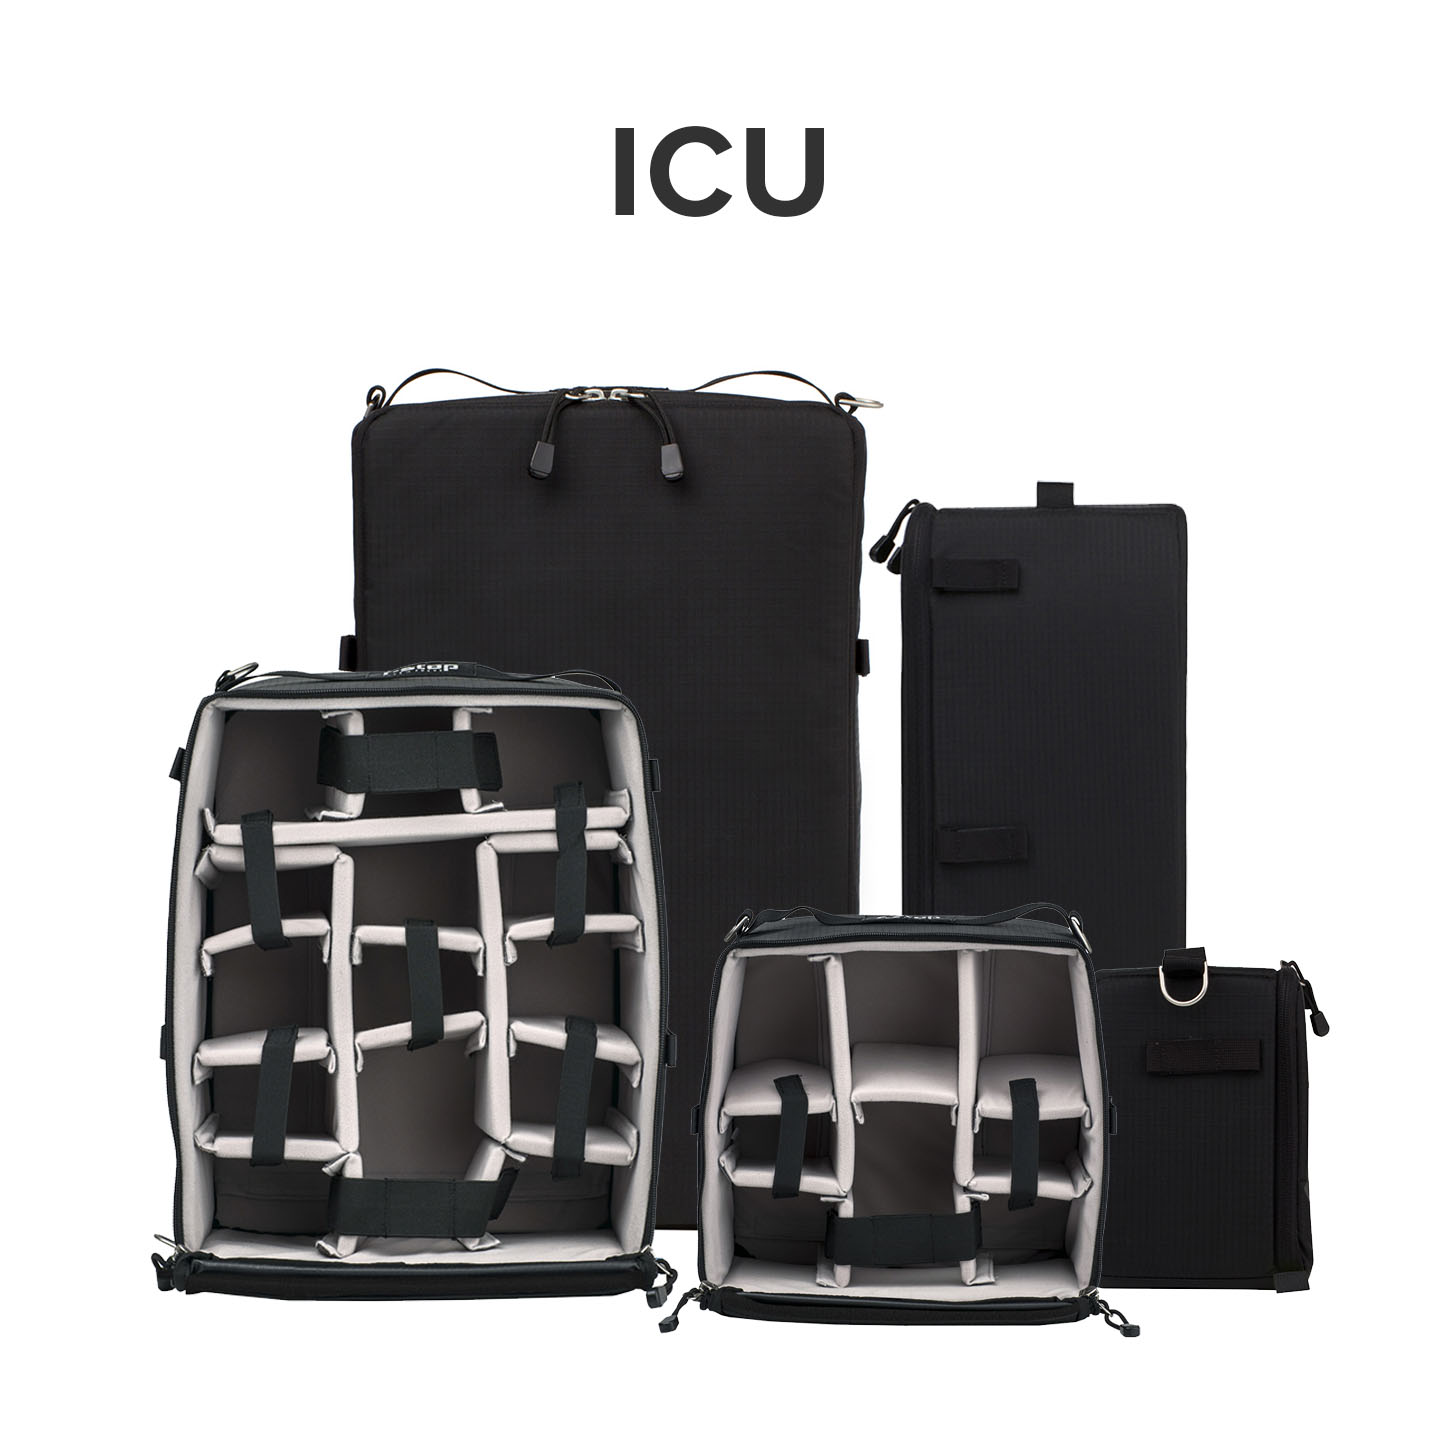 f-stop internal camera units | ICU